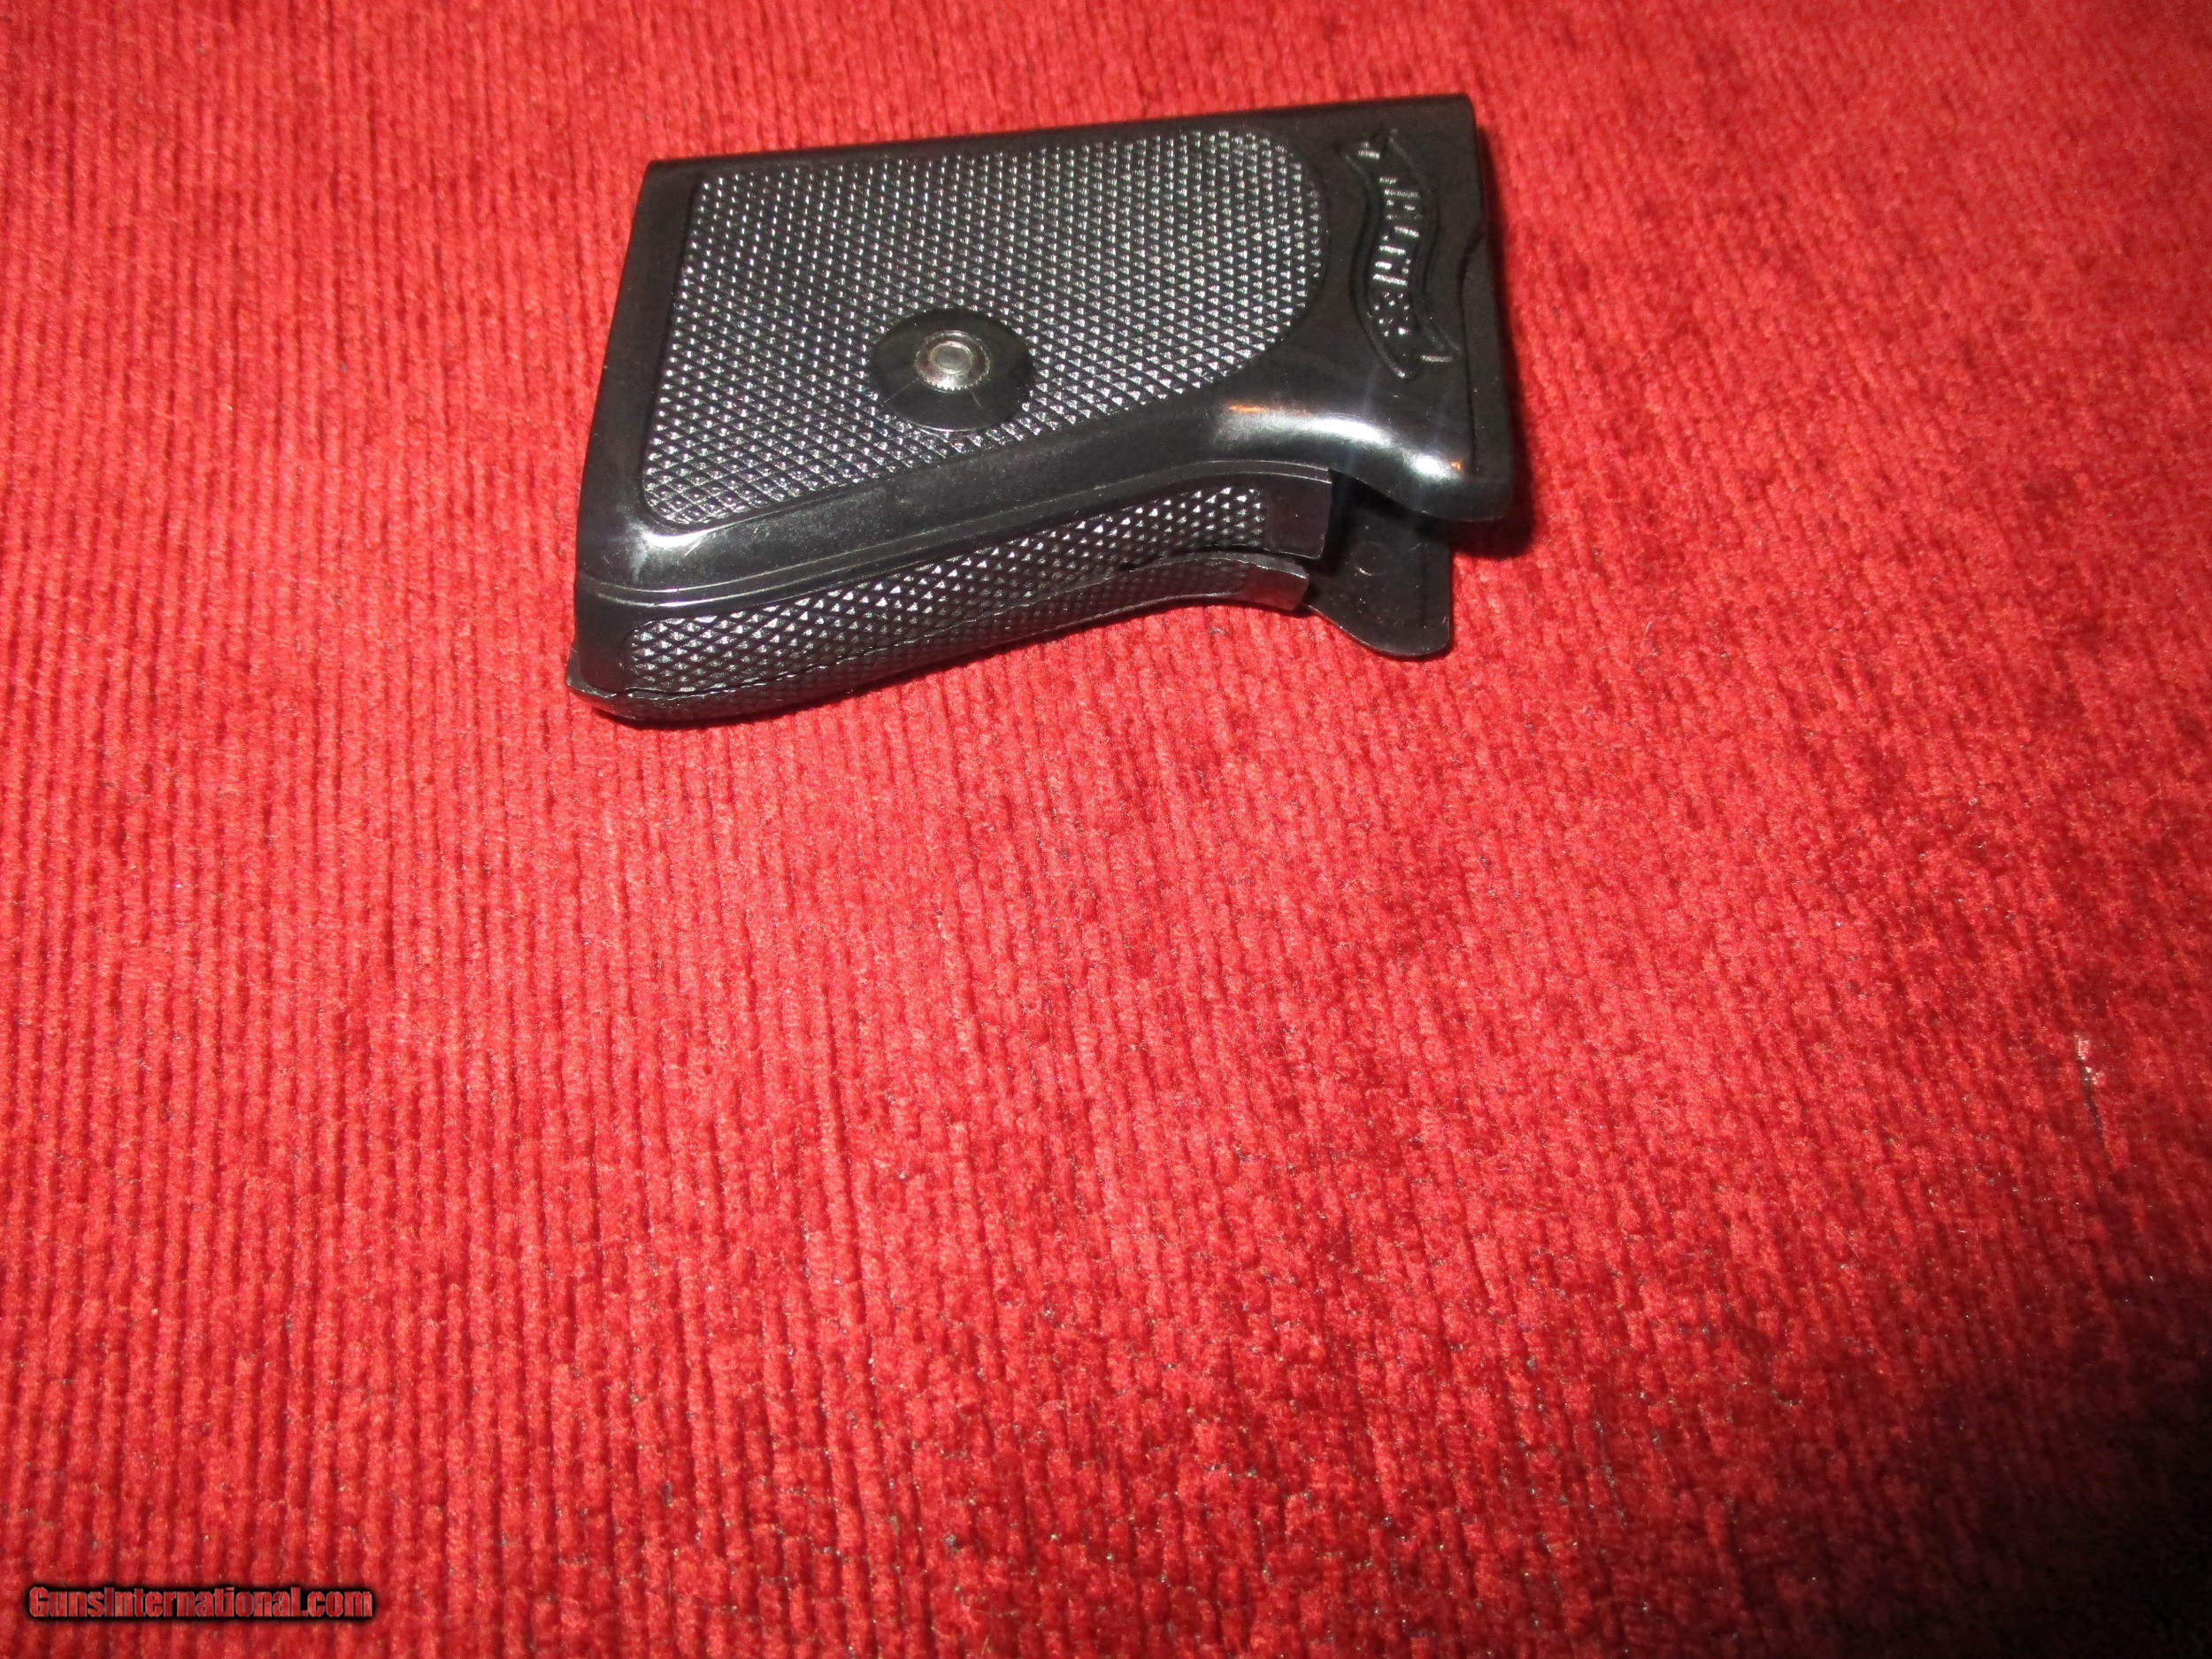 Walther PPK/S 380 ACP wrap - around checkered black plastic grips